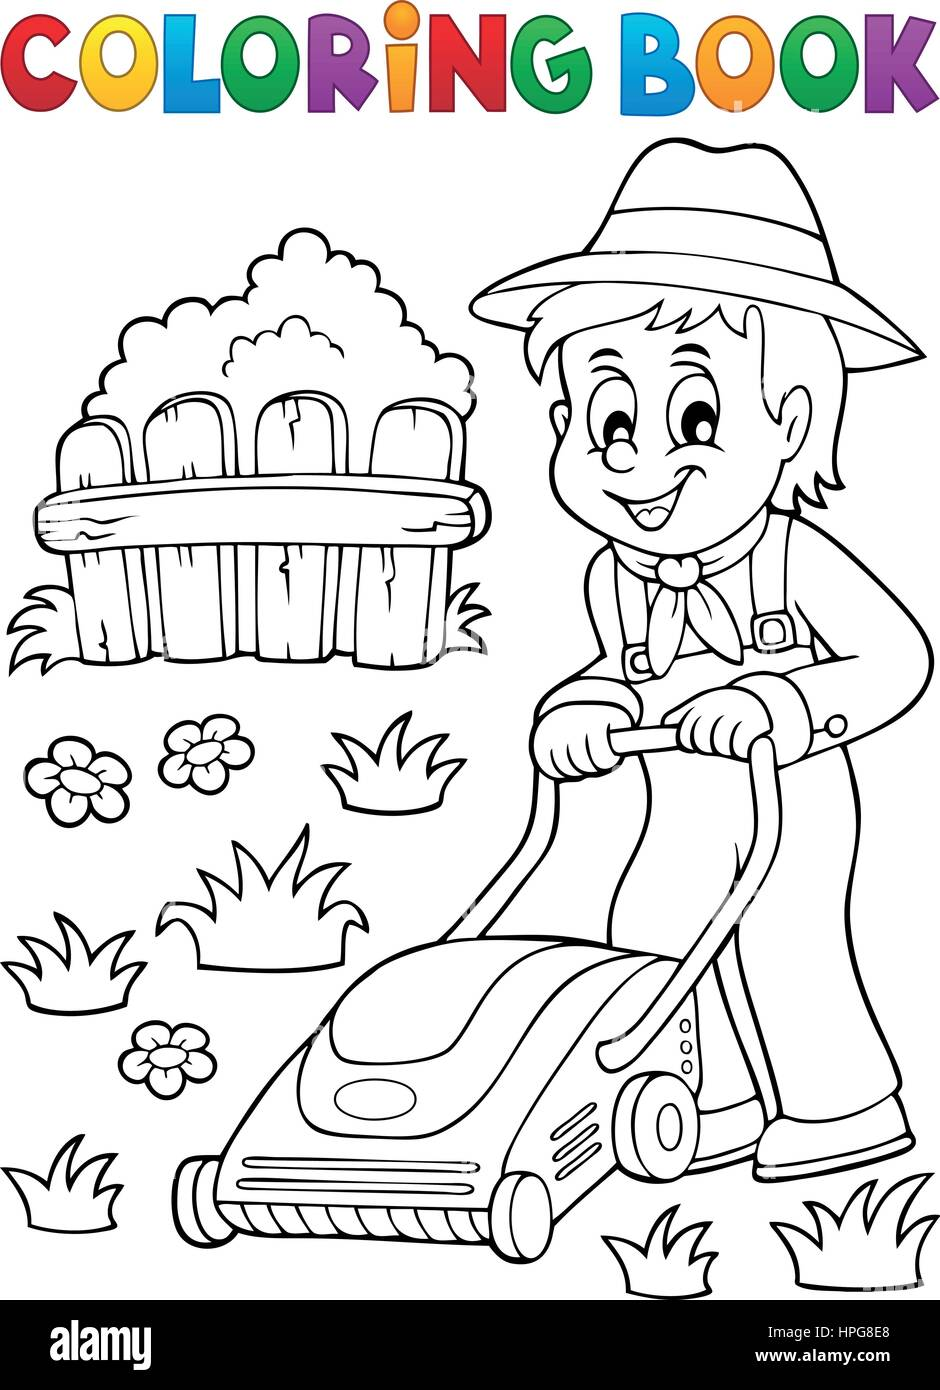 Coloring book gardener with lawn mower - eps10 vector illustration ...